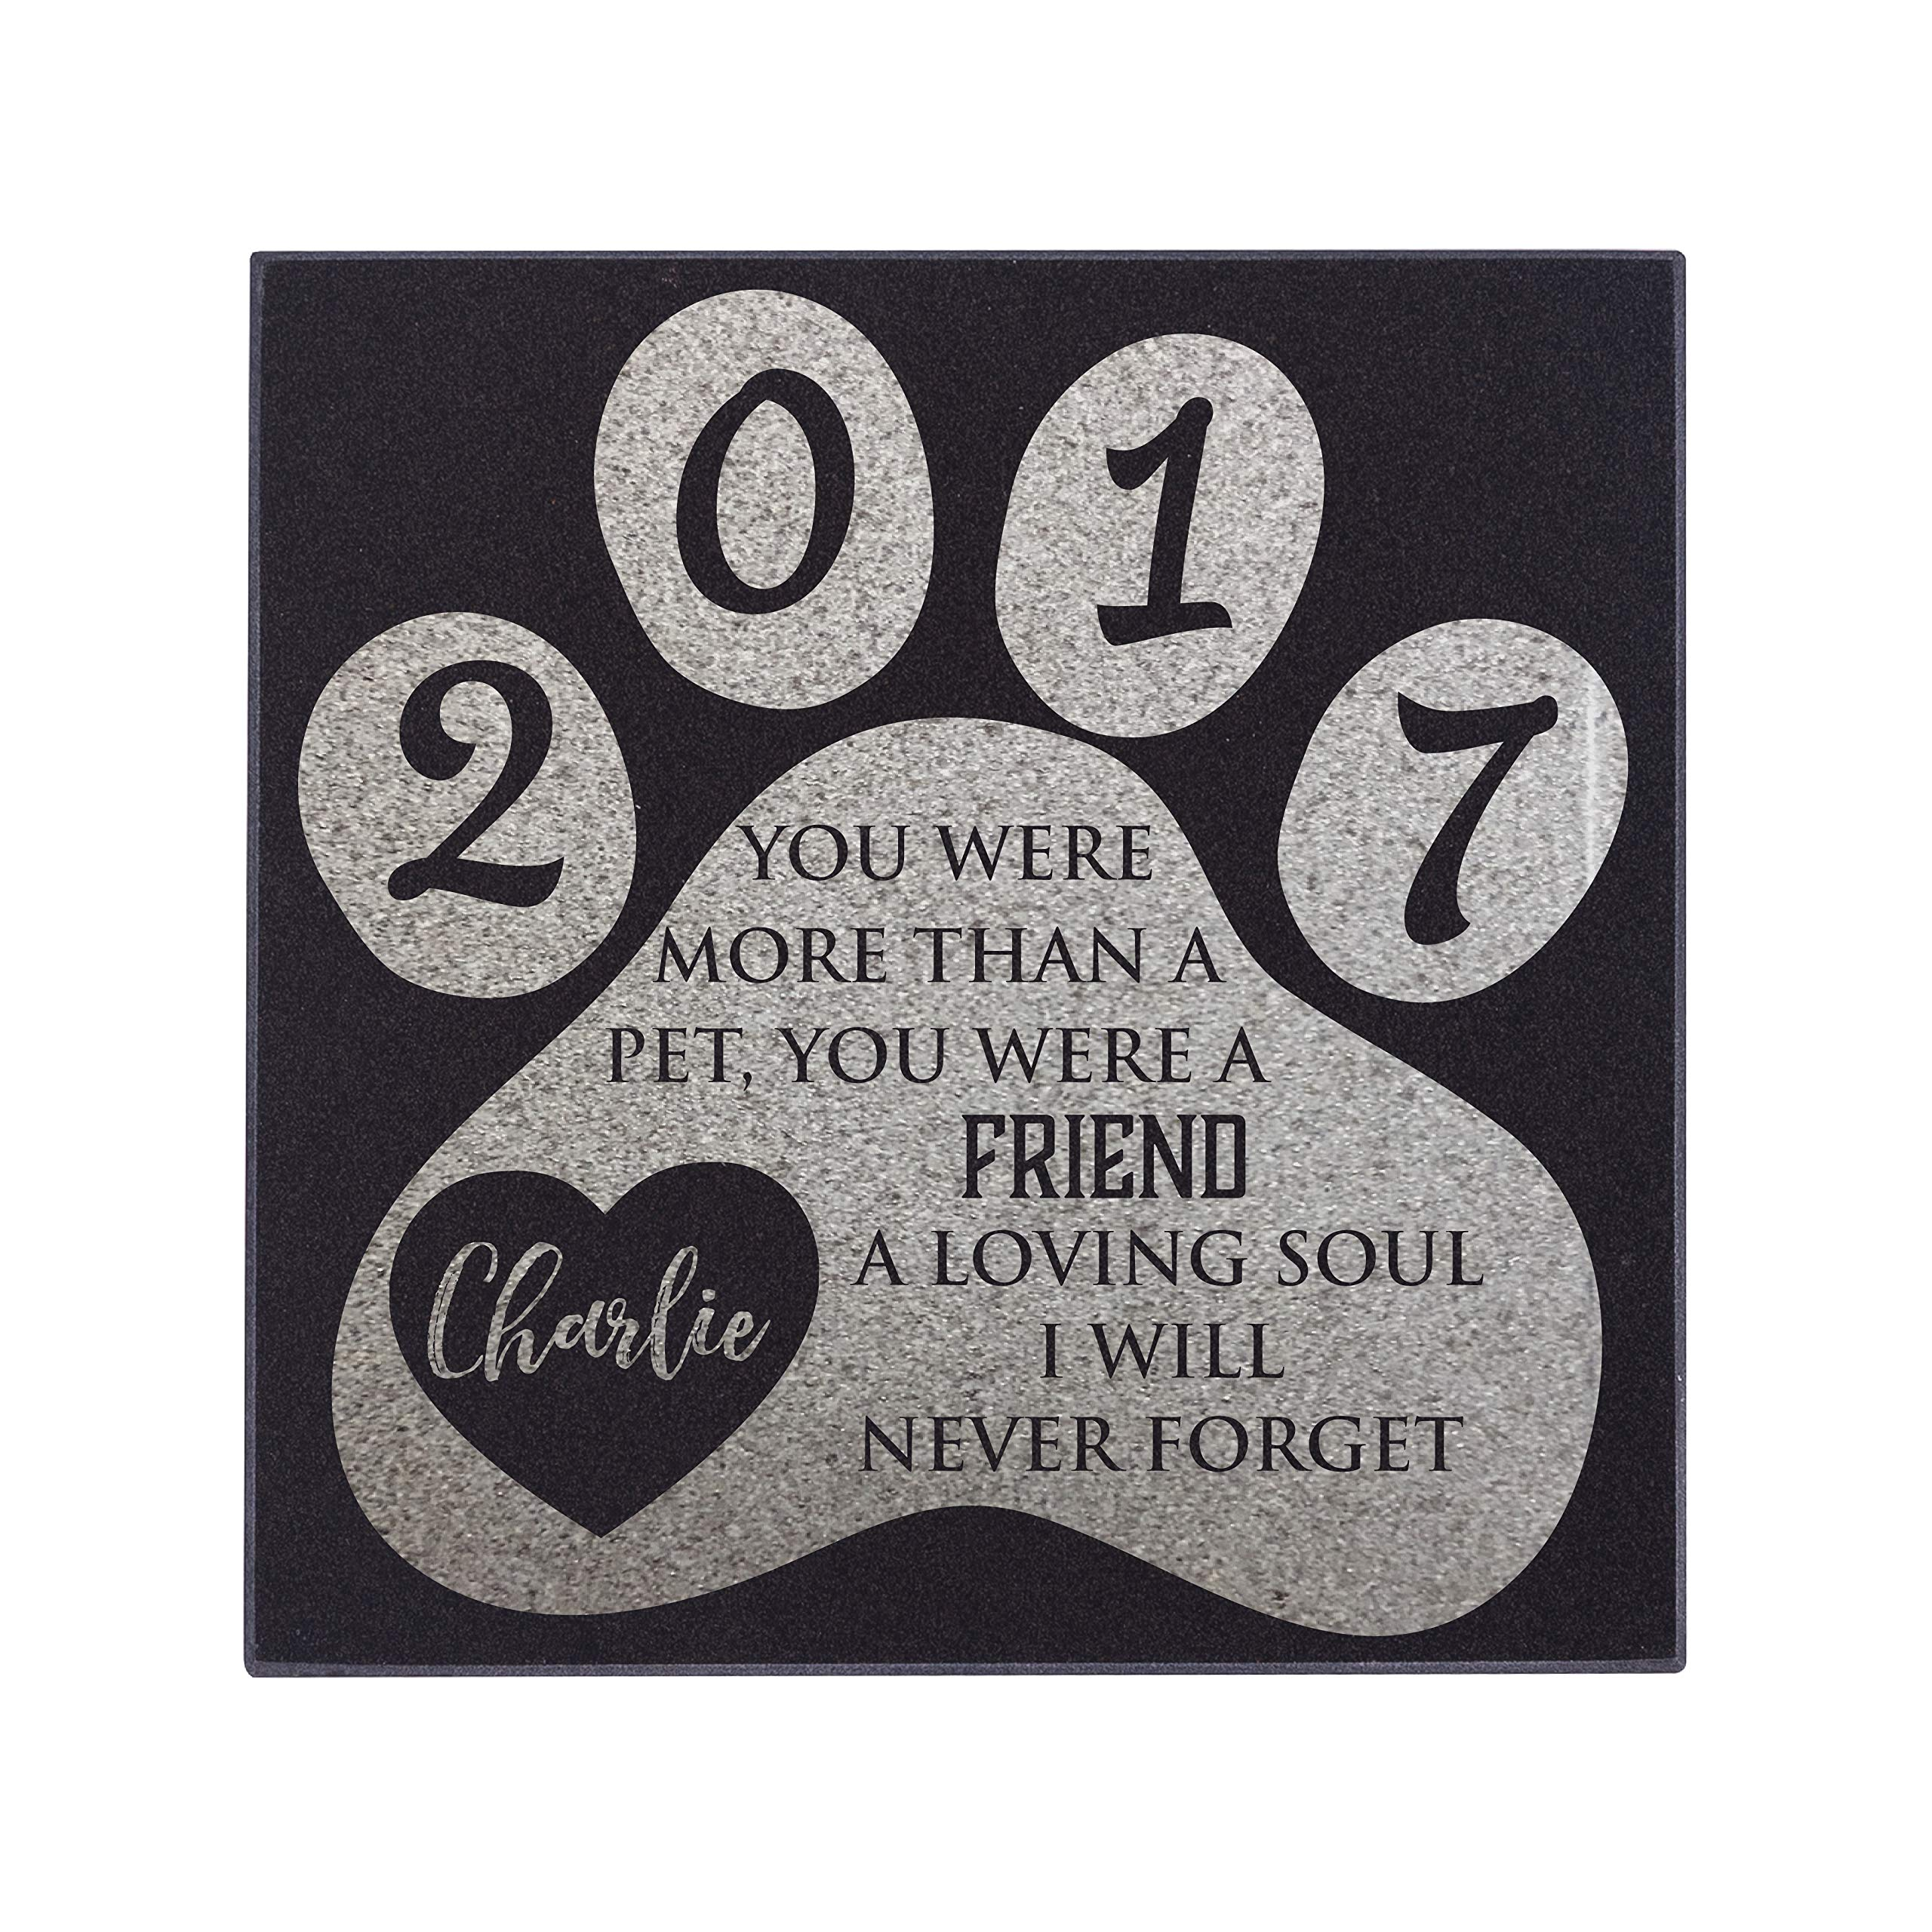 Personalized Granite Pet Memorial Stone A Loving Soul Customized Tombstone - Loss of Pet Gift- Indoor Outdoor Dog or Cat for Garden Backyard 6'' x 6'' #9